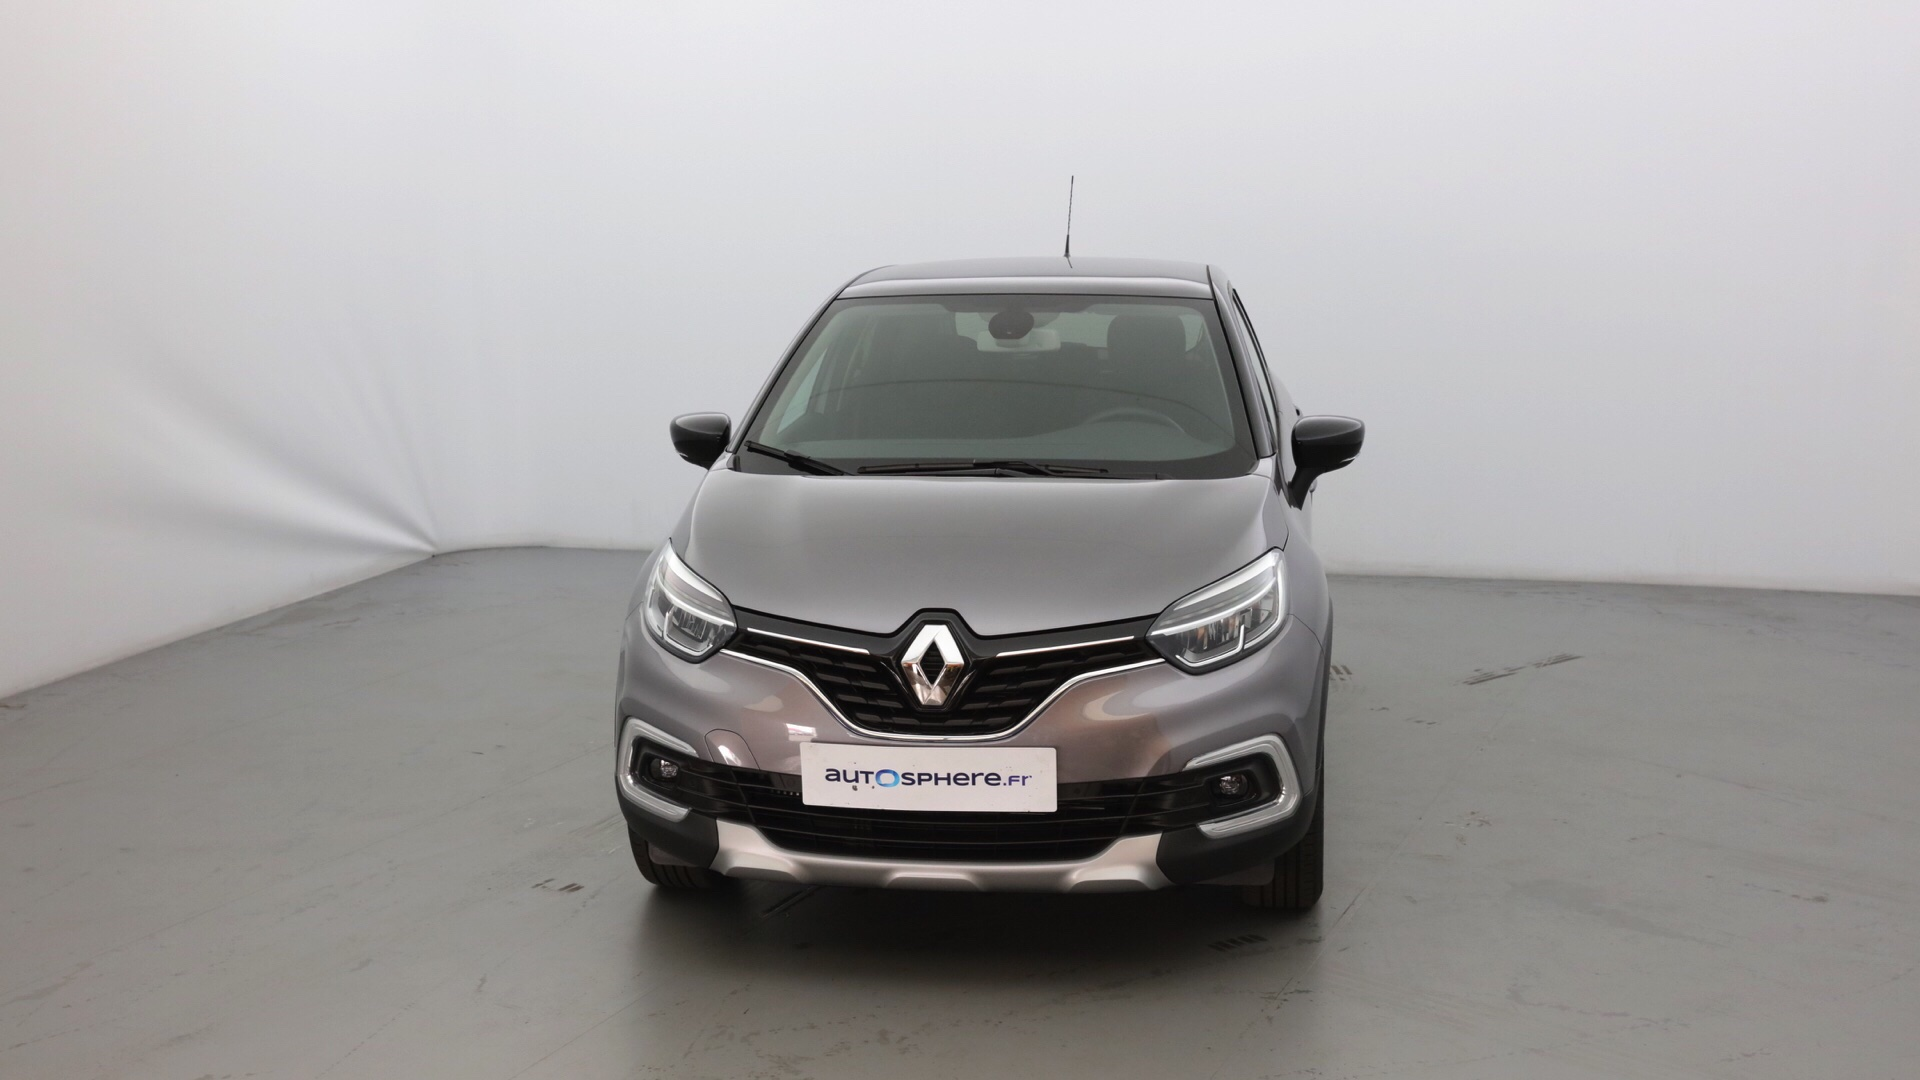 RENAULT CAPTUR 0.9 TCE 90CH ENERGY INTENS - Miniature 2